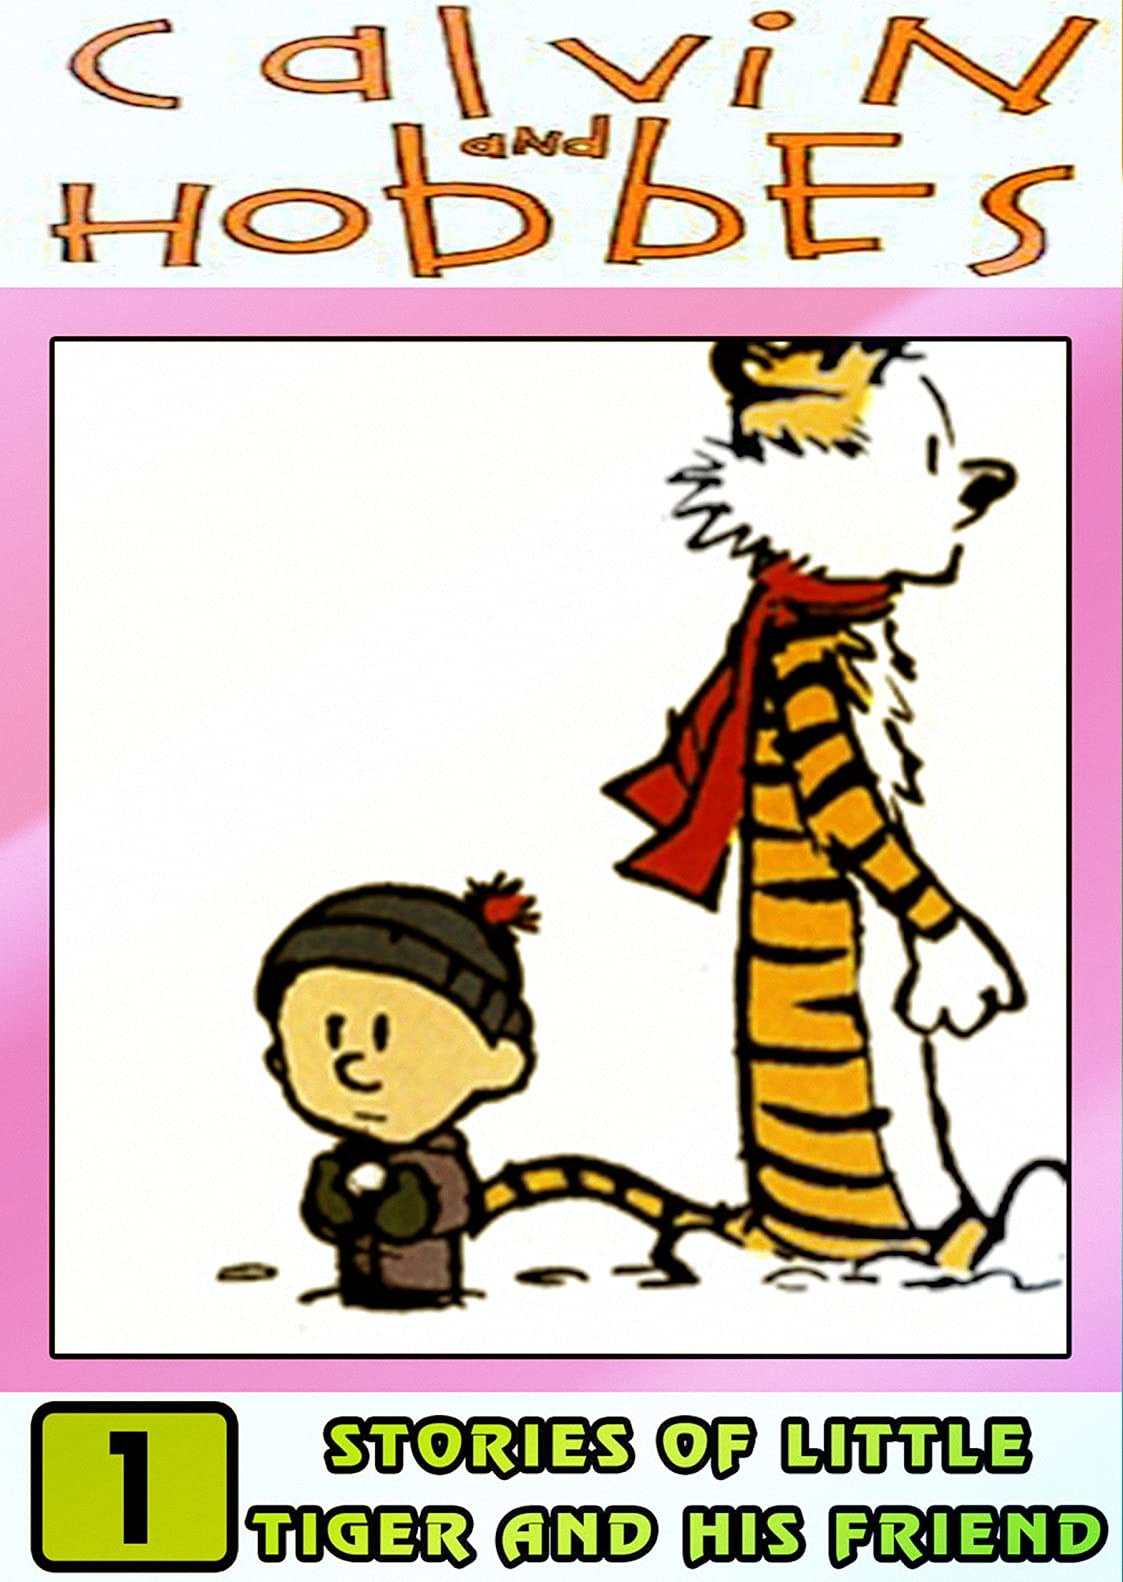 Little-Calvin-And-Hobbes Stories: Collection Set 1 - Great Comic And Funny Cartoon Adventures Of Hob-bes Ca-lvin For Children